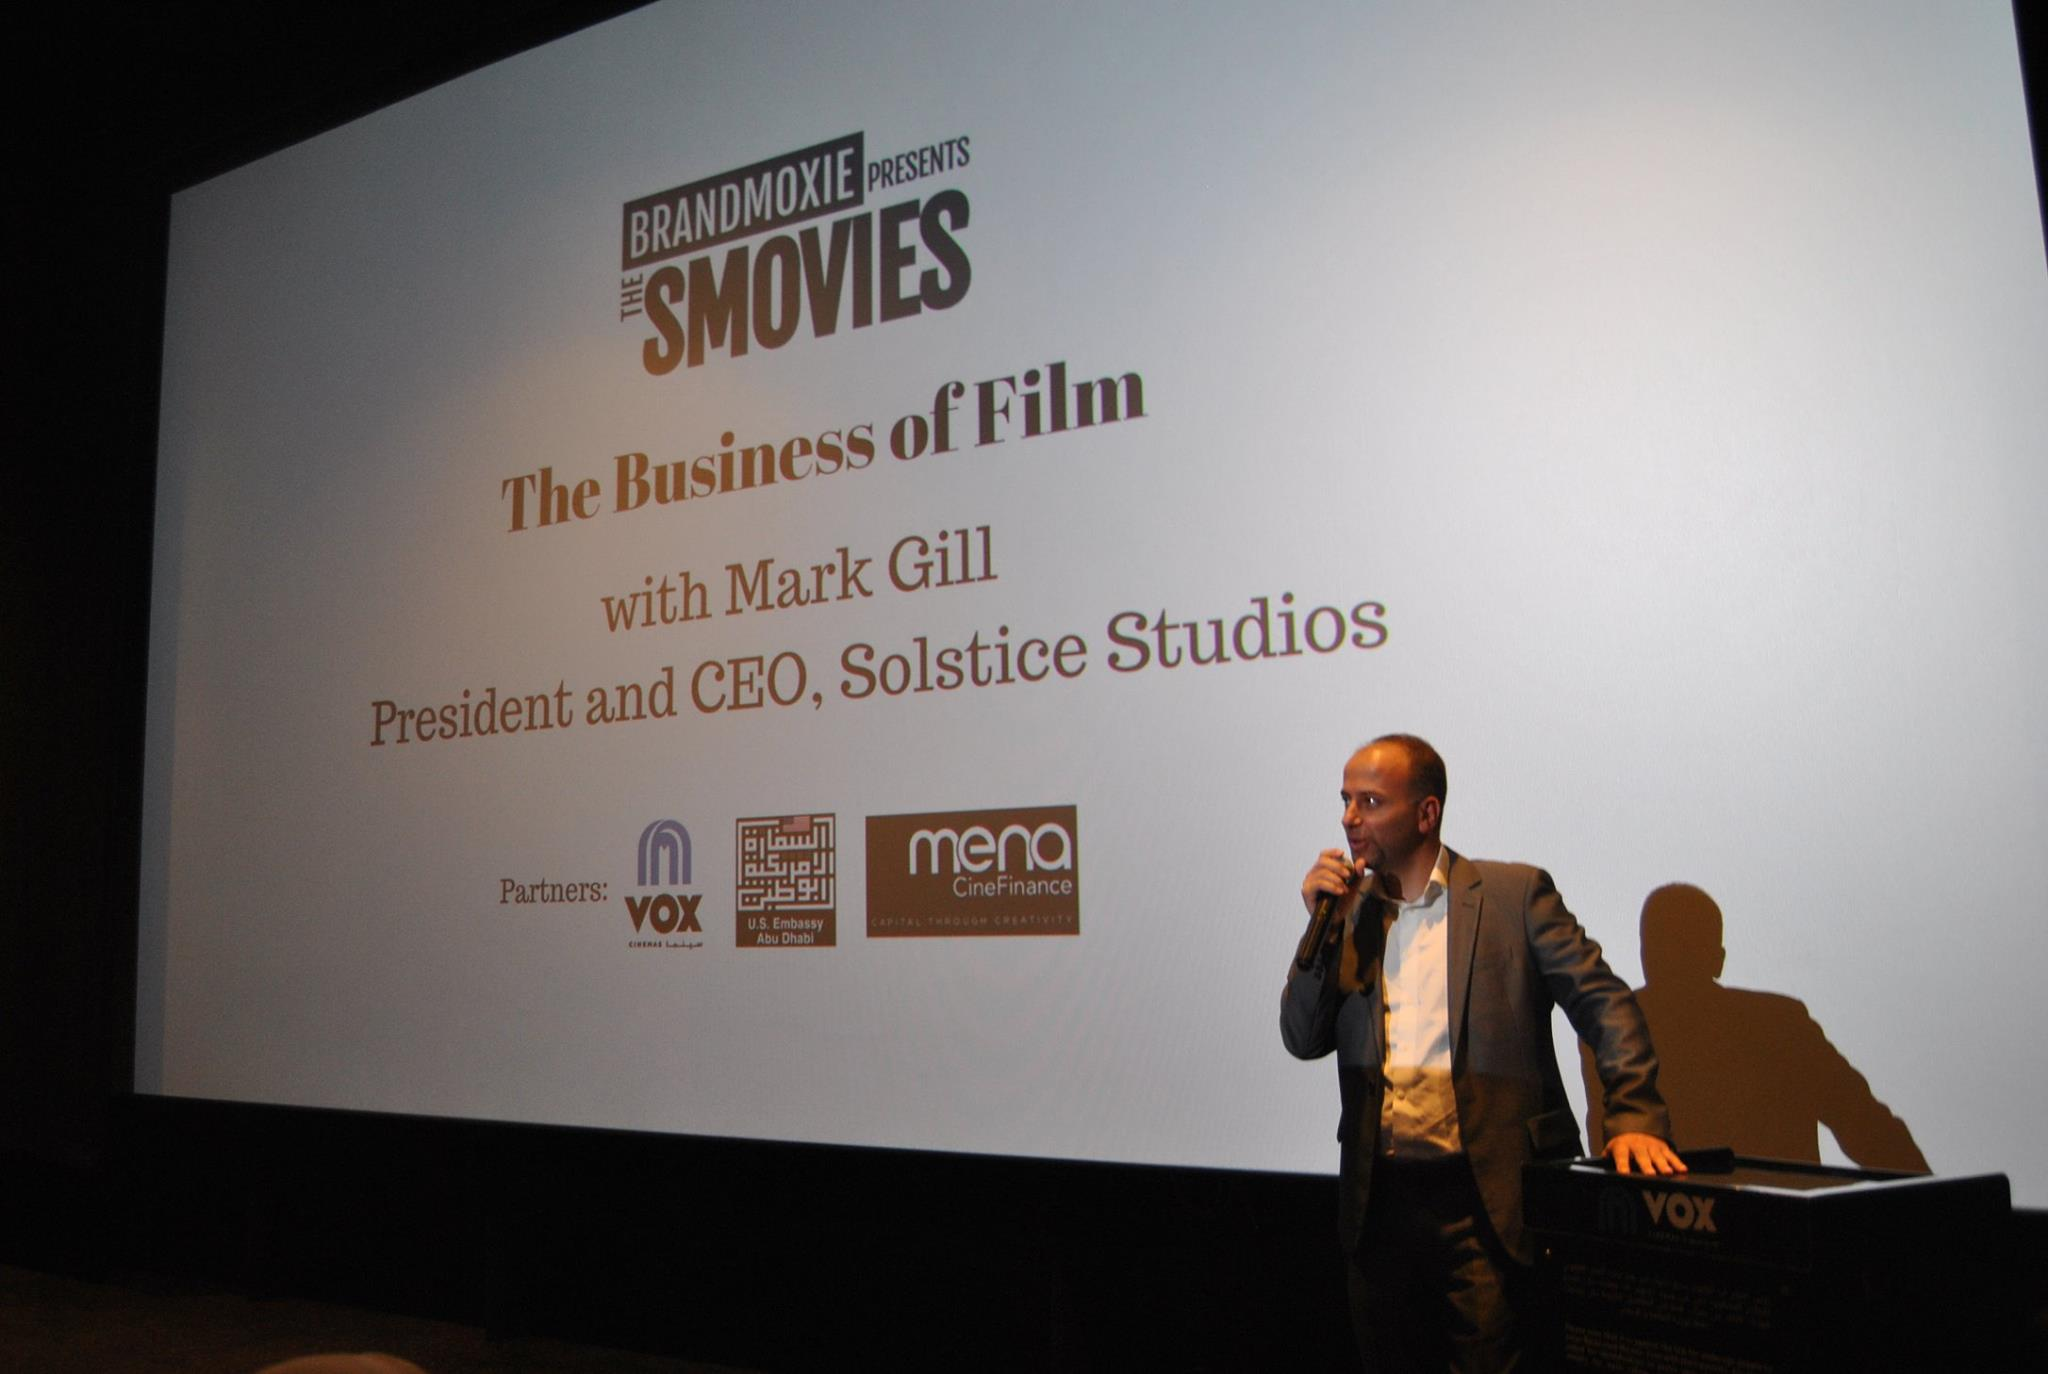 The Business of Film with Mark Gill